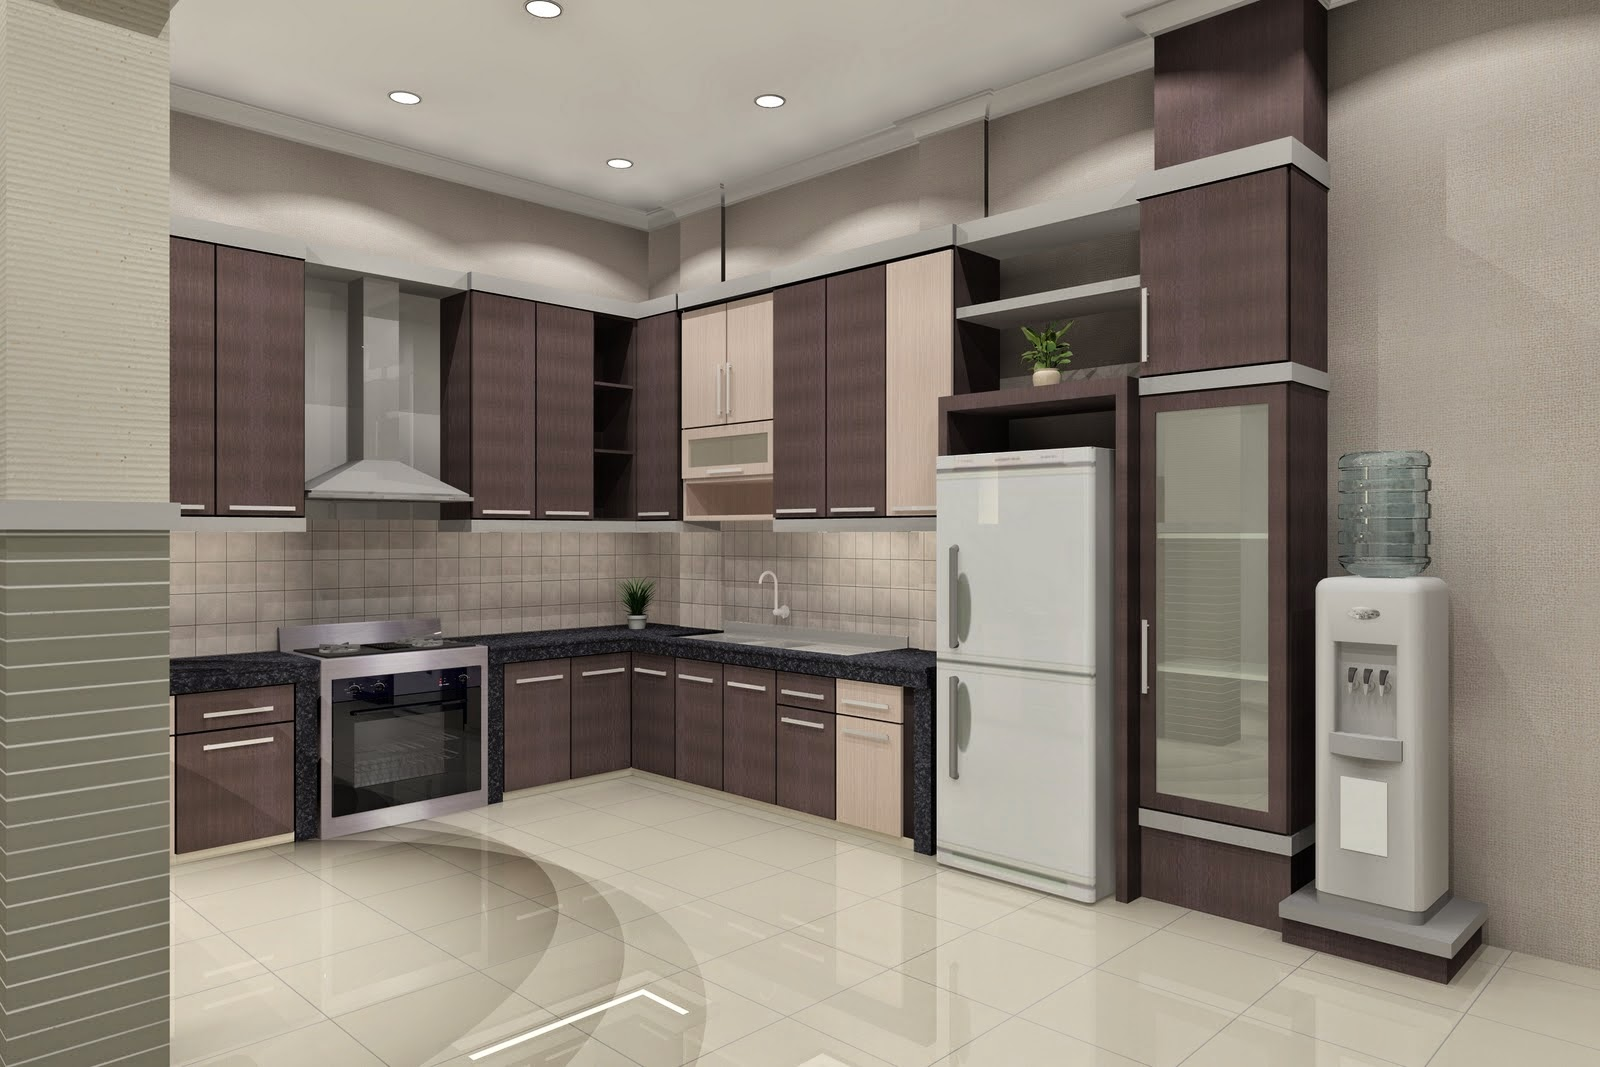 Simple minimalist kitchen design 2015 home design ideas 2015 for Design kitchen set minimalis